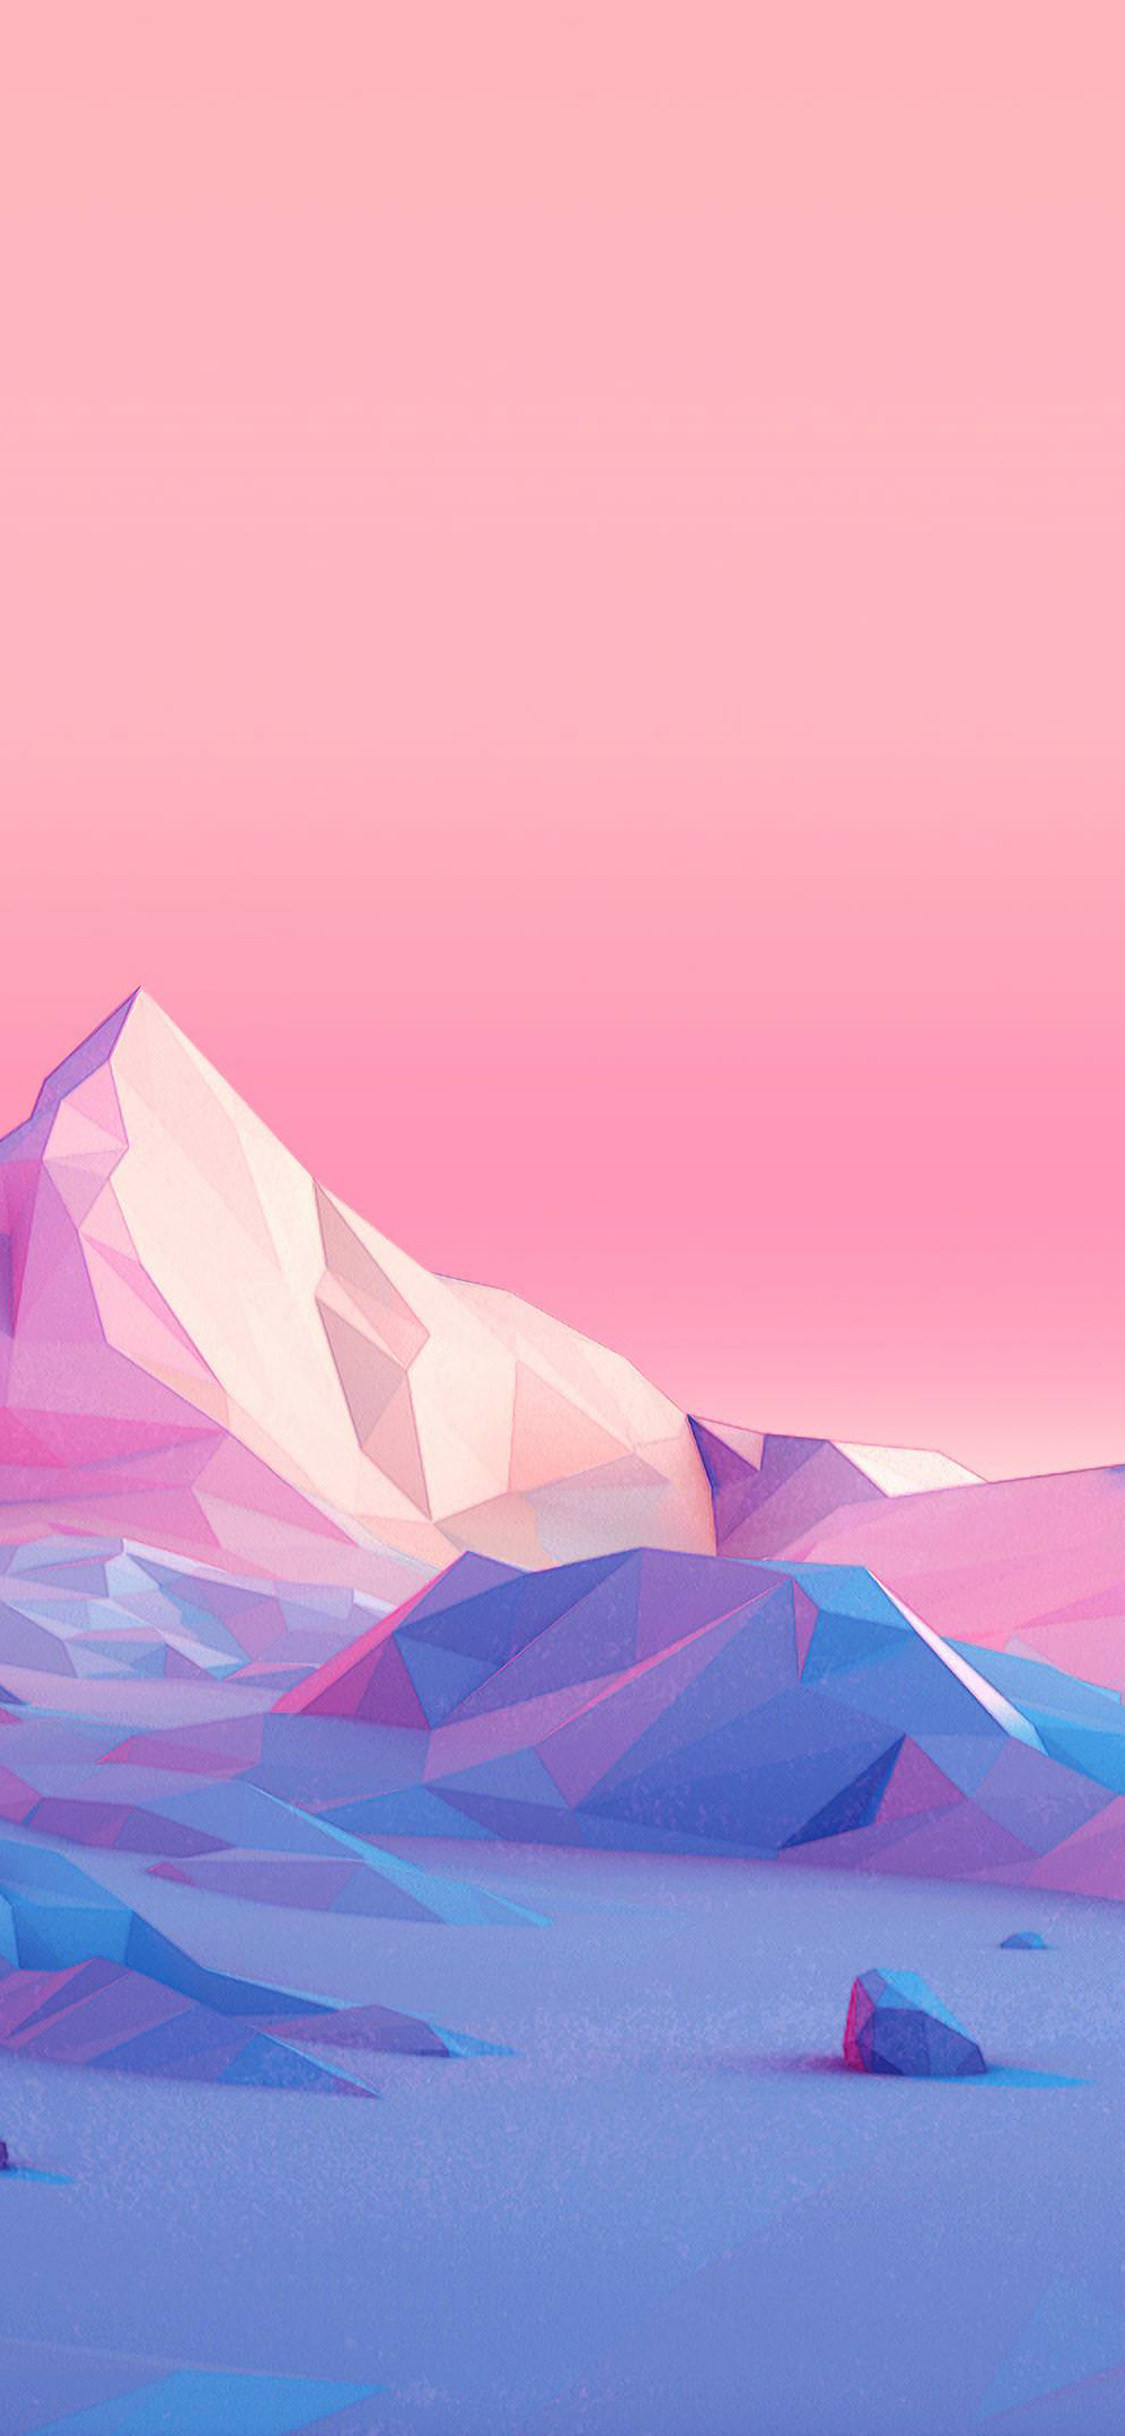 1125x2436 Polygon Mountains Minimalist Iphone Xs Iphone 10 Iphone X